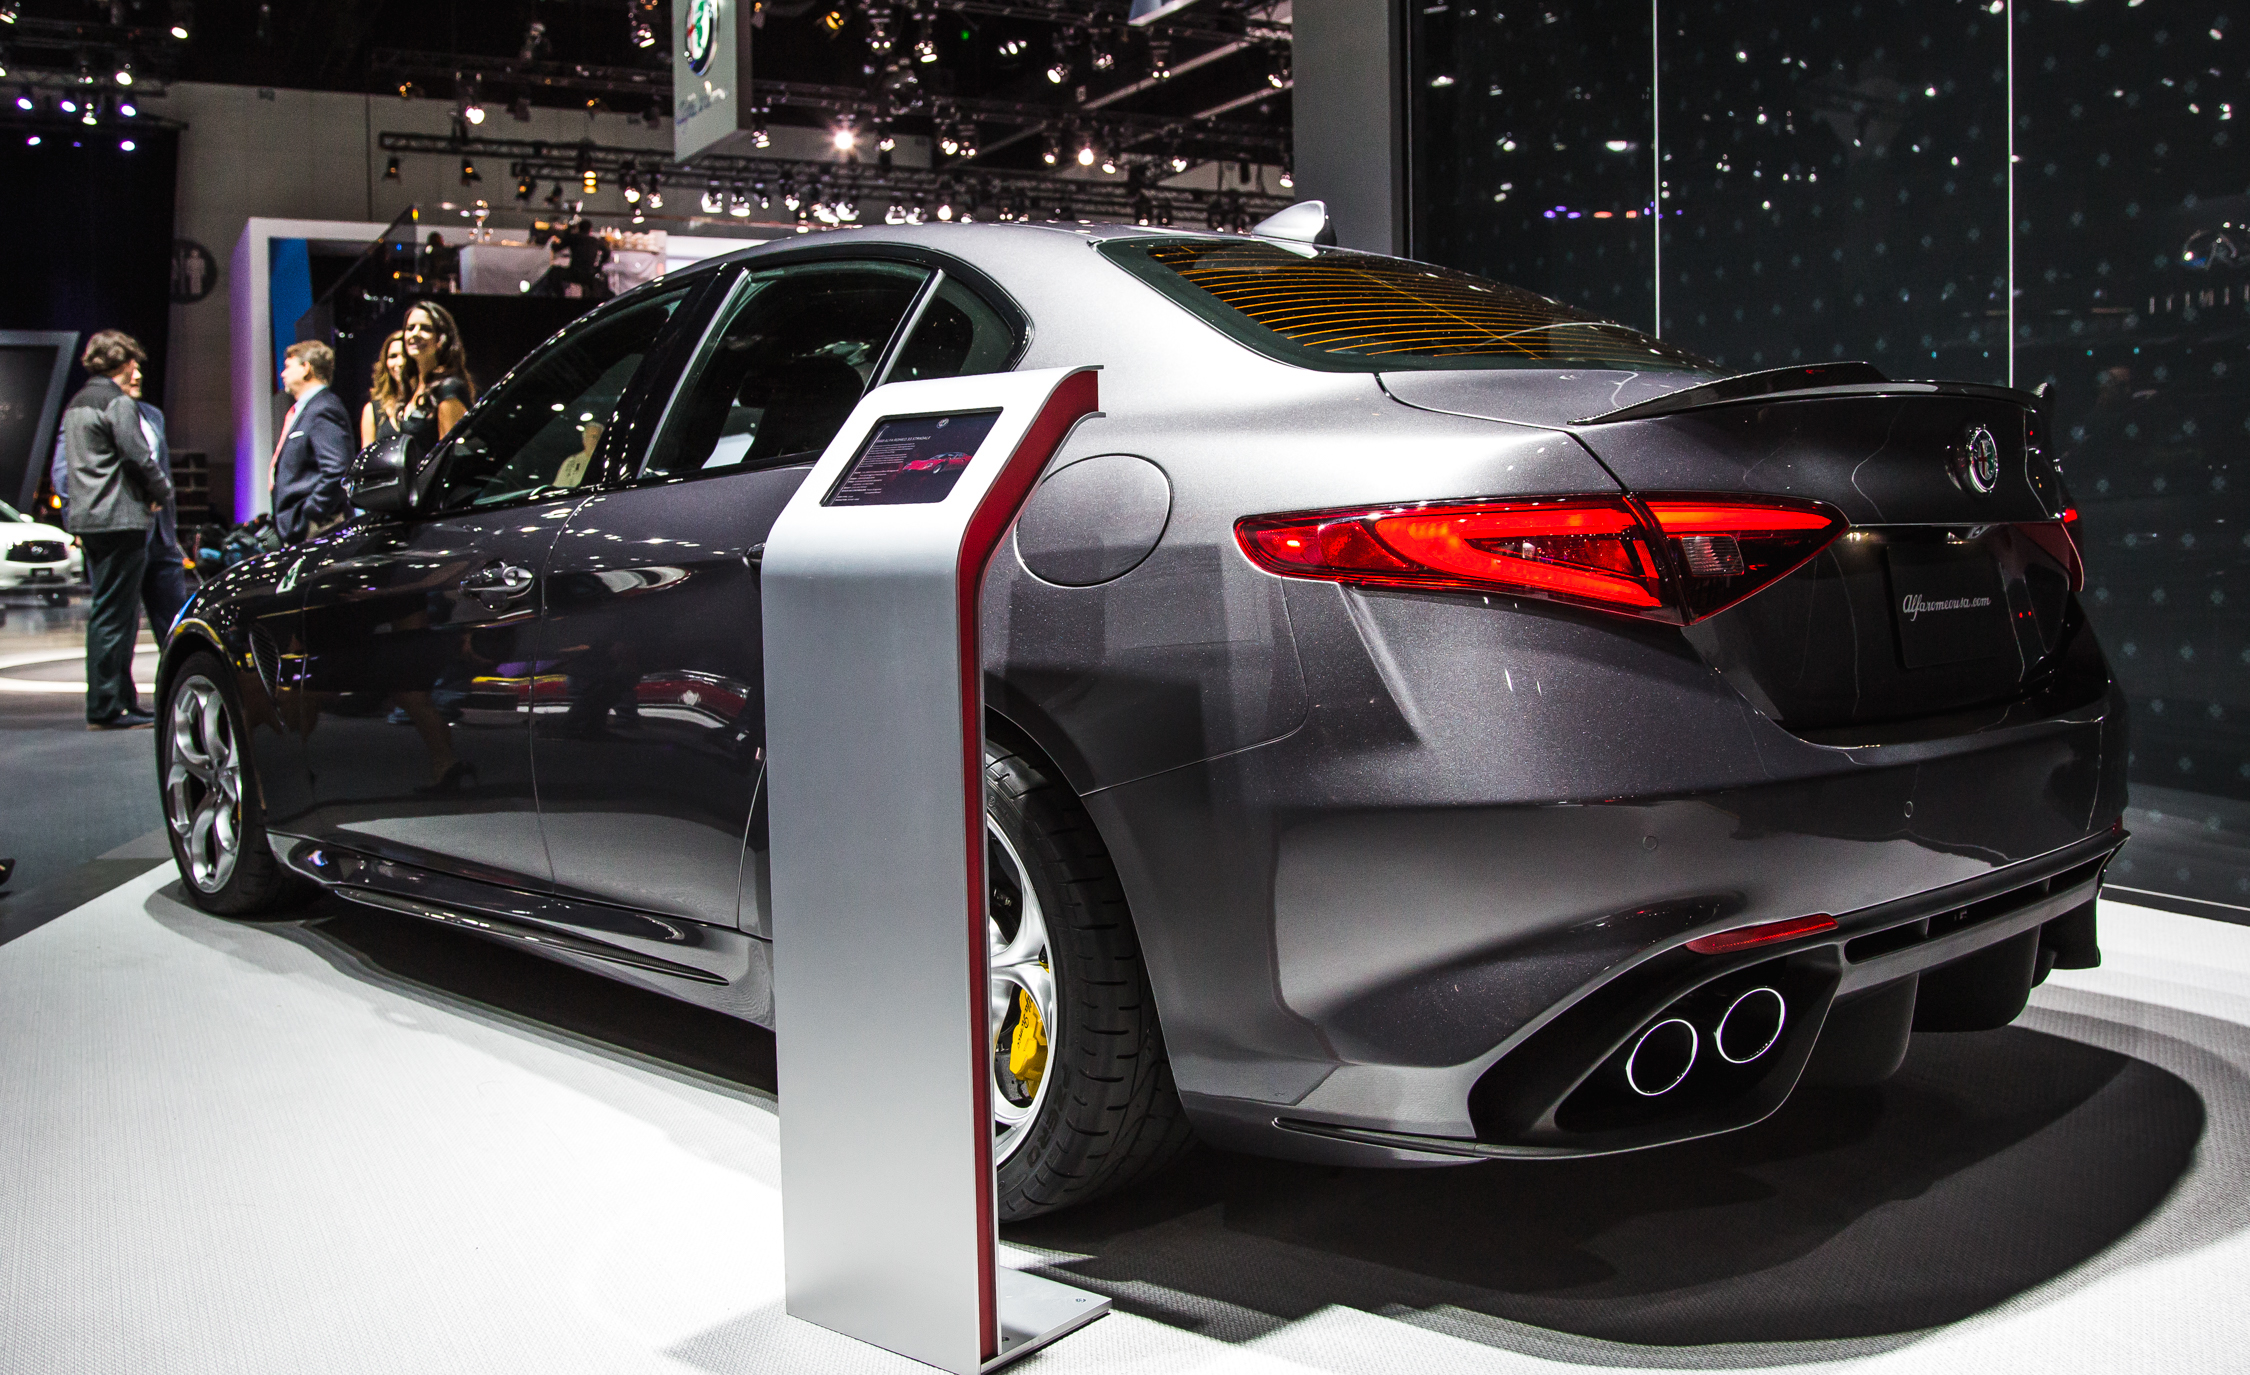 2017 Alfa Romeo Giulia Quadrifoglio Rear Side Design (Photo 26 of 29)